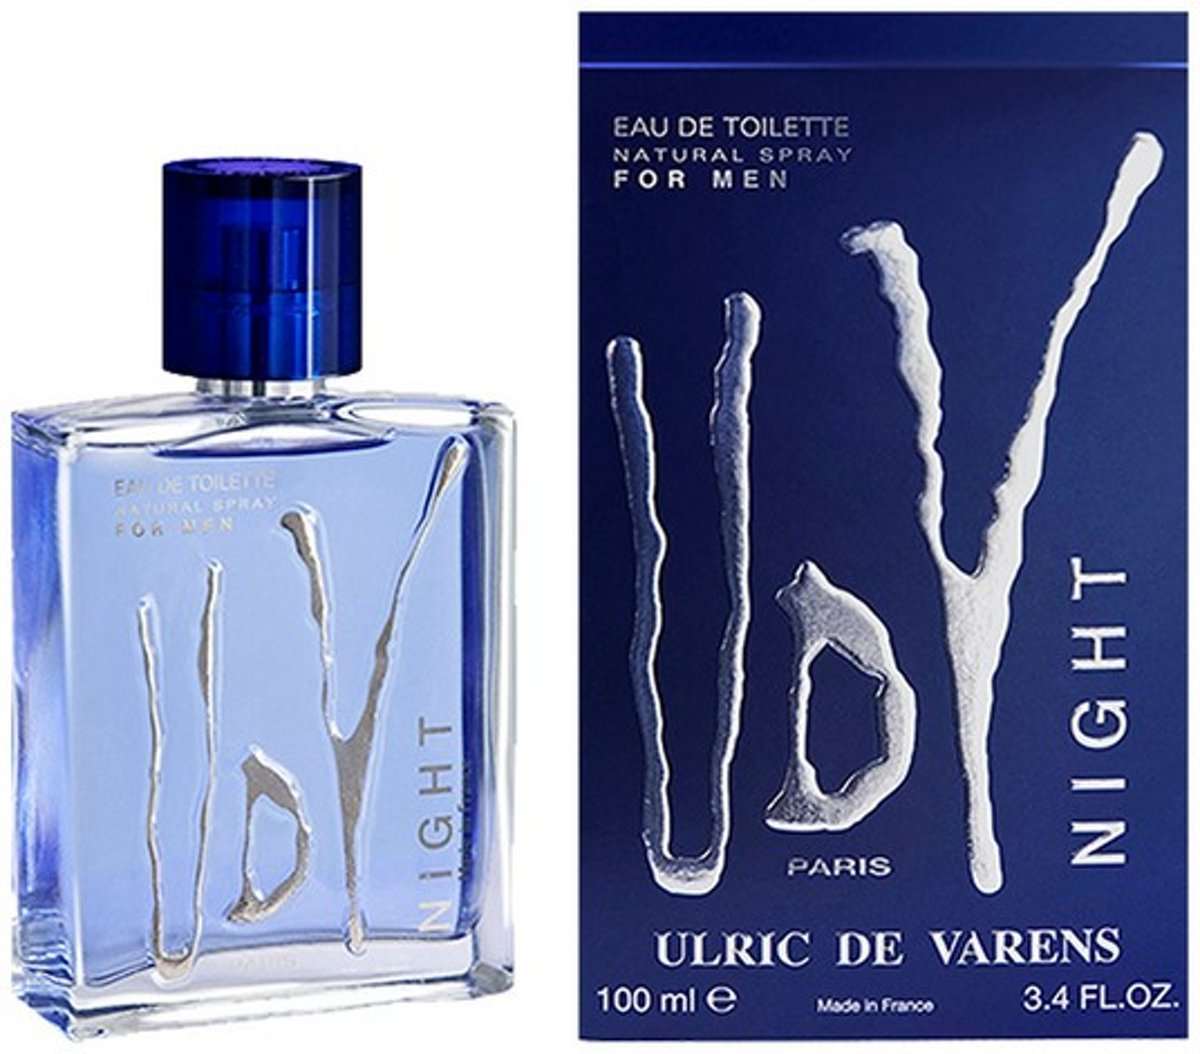 Herenparfum Udv Night Urlic De Varens EDT (100 ml)